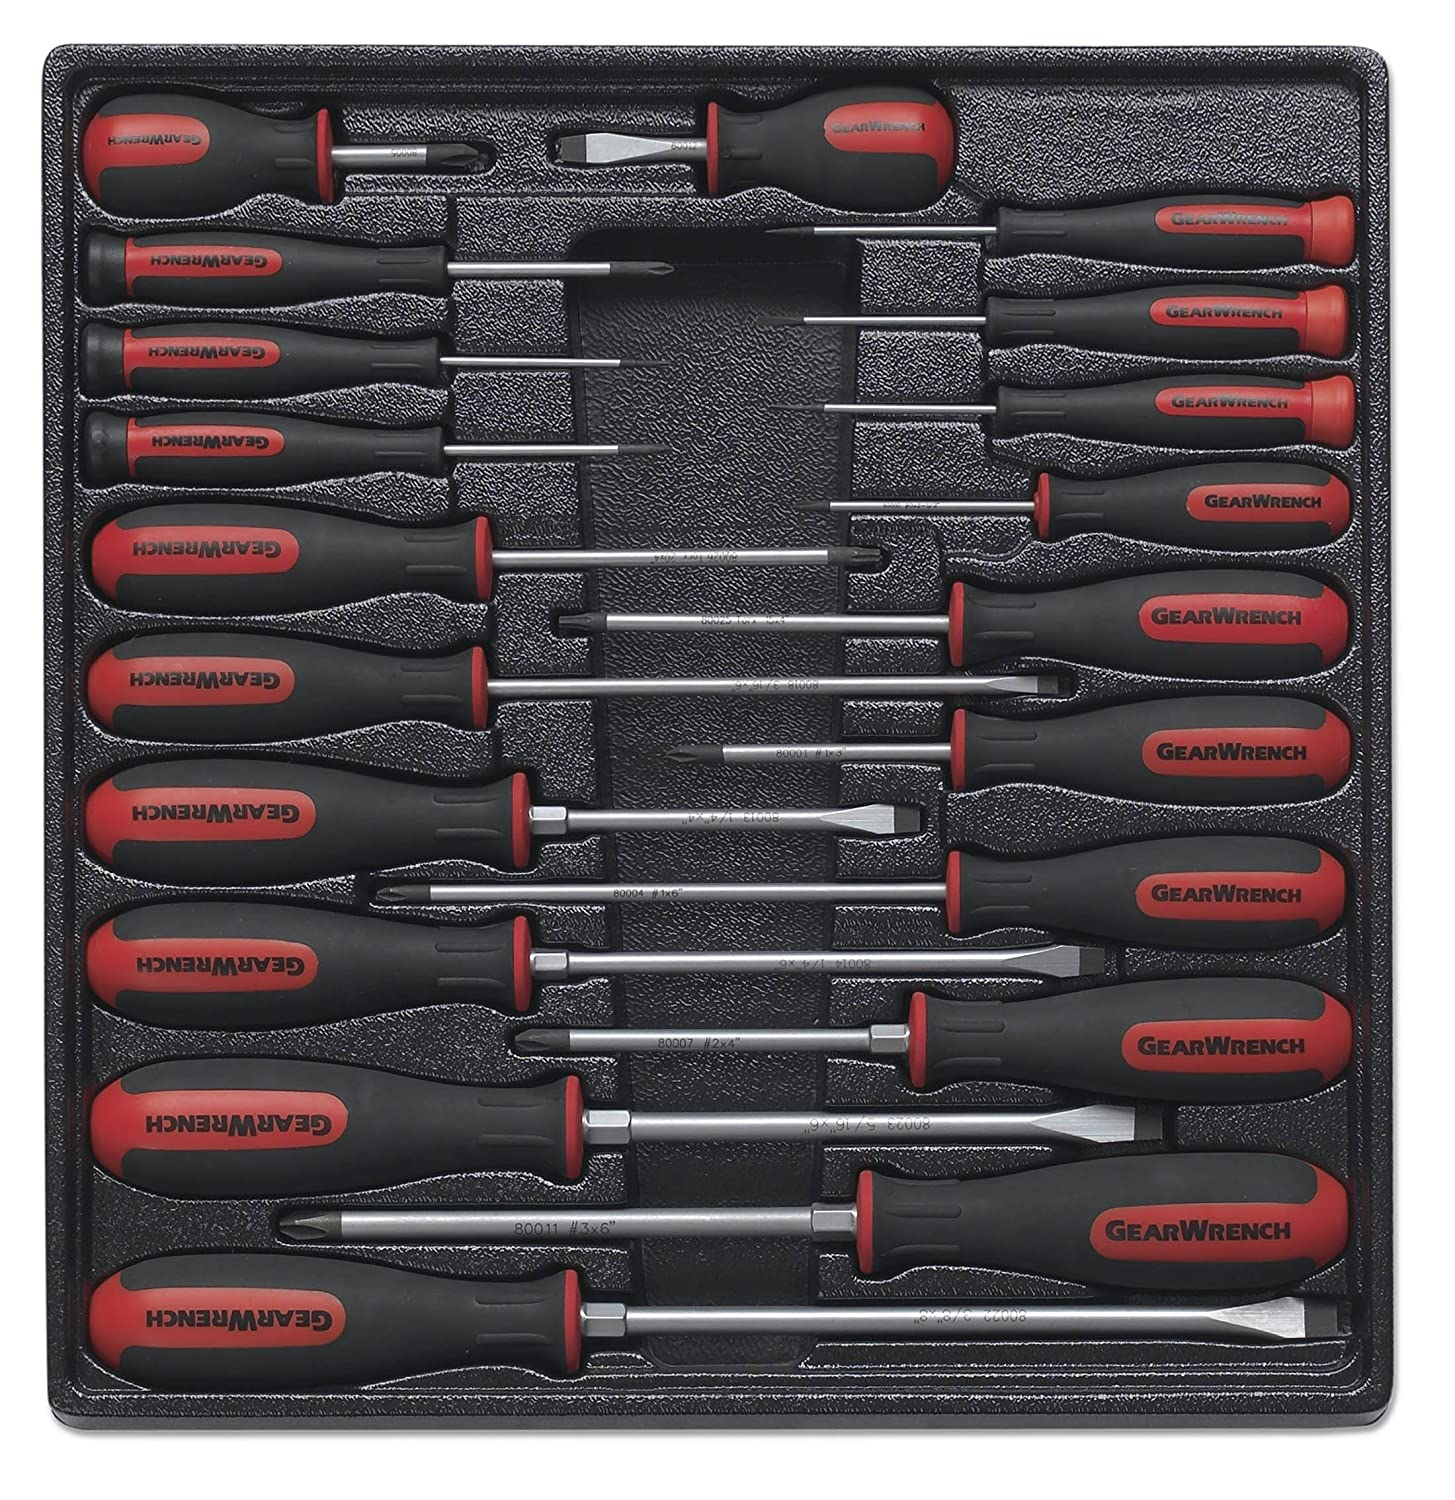 The Best Screwdriver Set Reviews - Expert Choice's 1